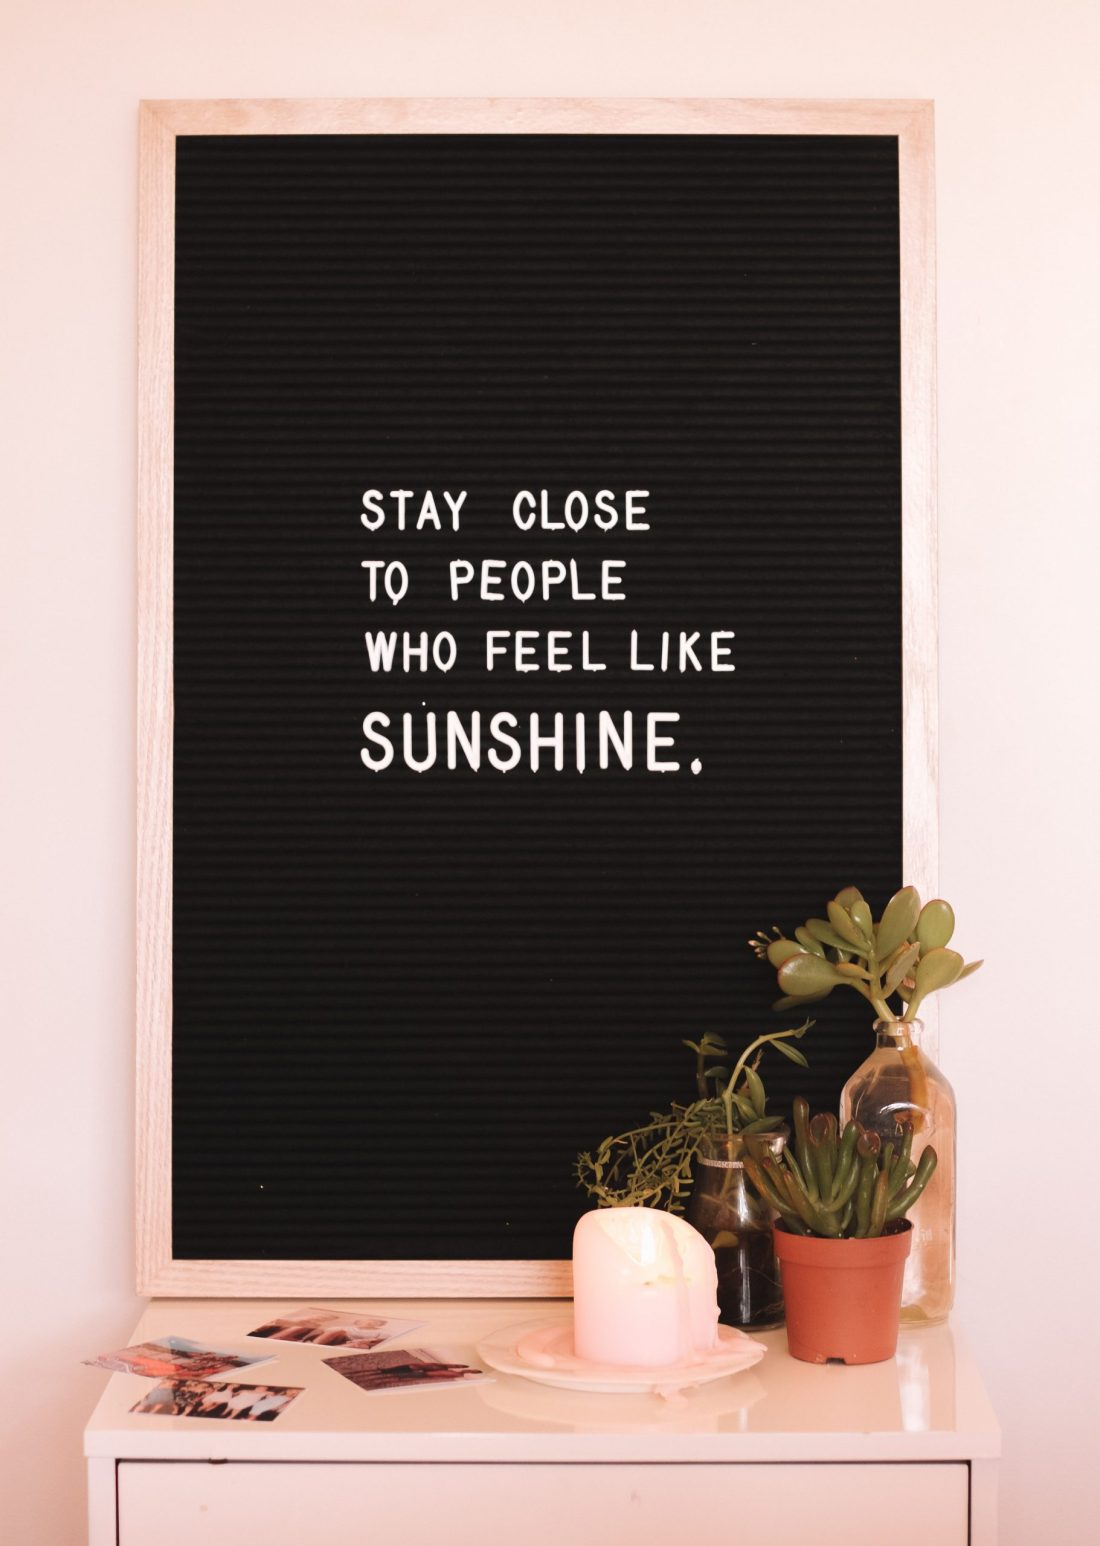 """Image of board and plants, with """"Stay close to people who feel like sunshine"""" quote."""